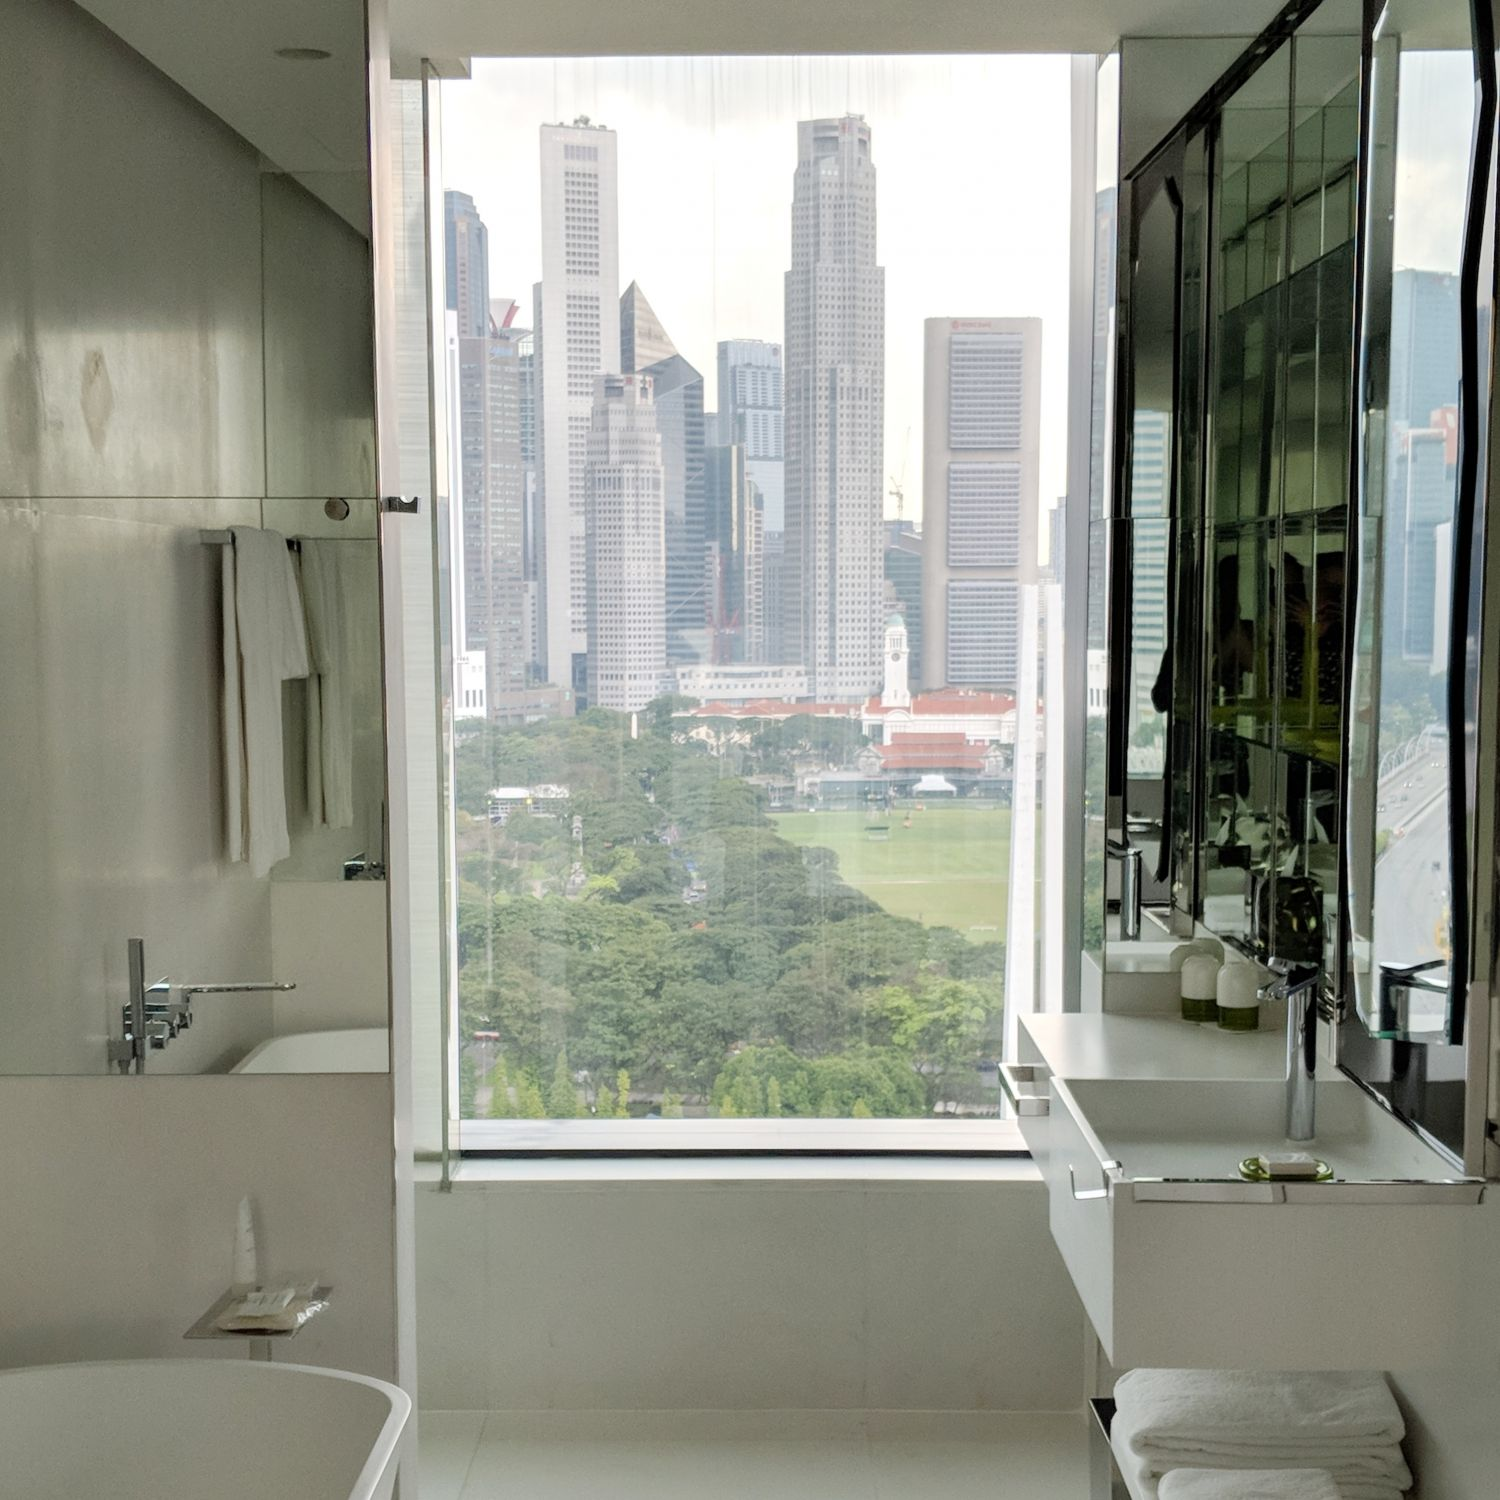 jw marriott singapore south beach executive suite with premier marina bay view bathroom